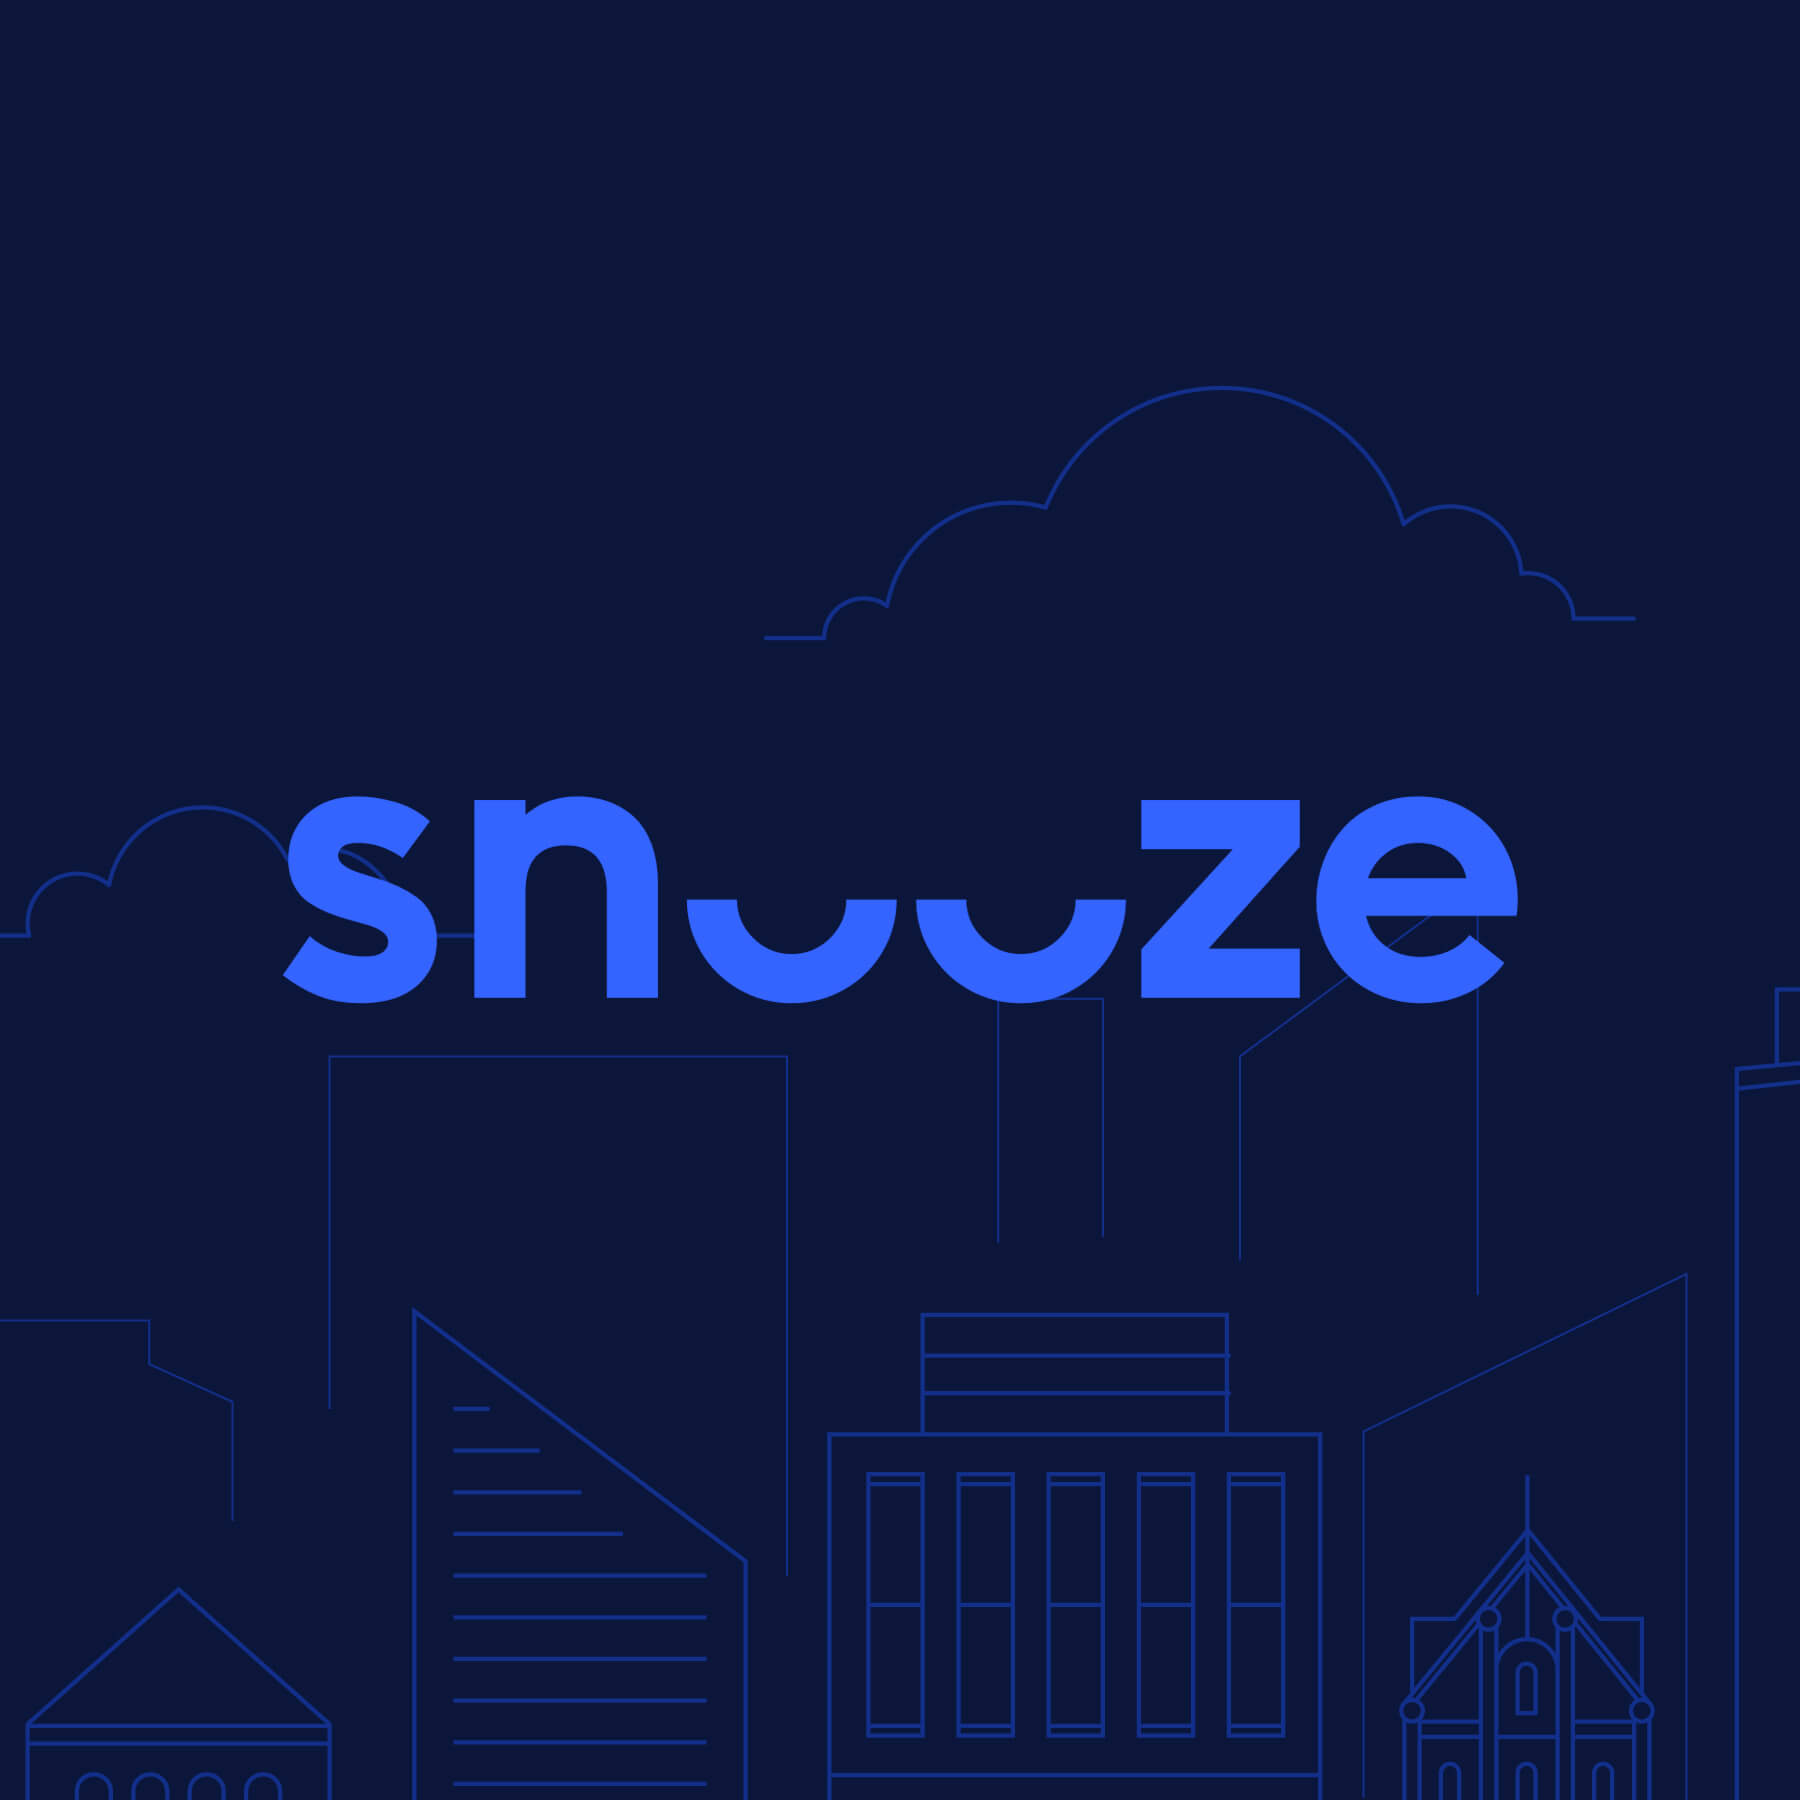 With our eyes closedLogo Development - We played with the image of closed eyes in Snooze's iconic lowercase logo. A bright purple pops against this sleepy dark navy, bringing nighttime into the spotlight.